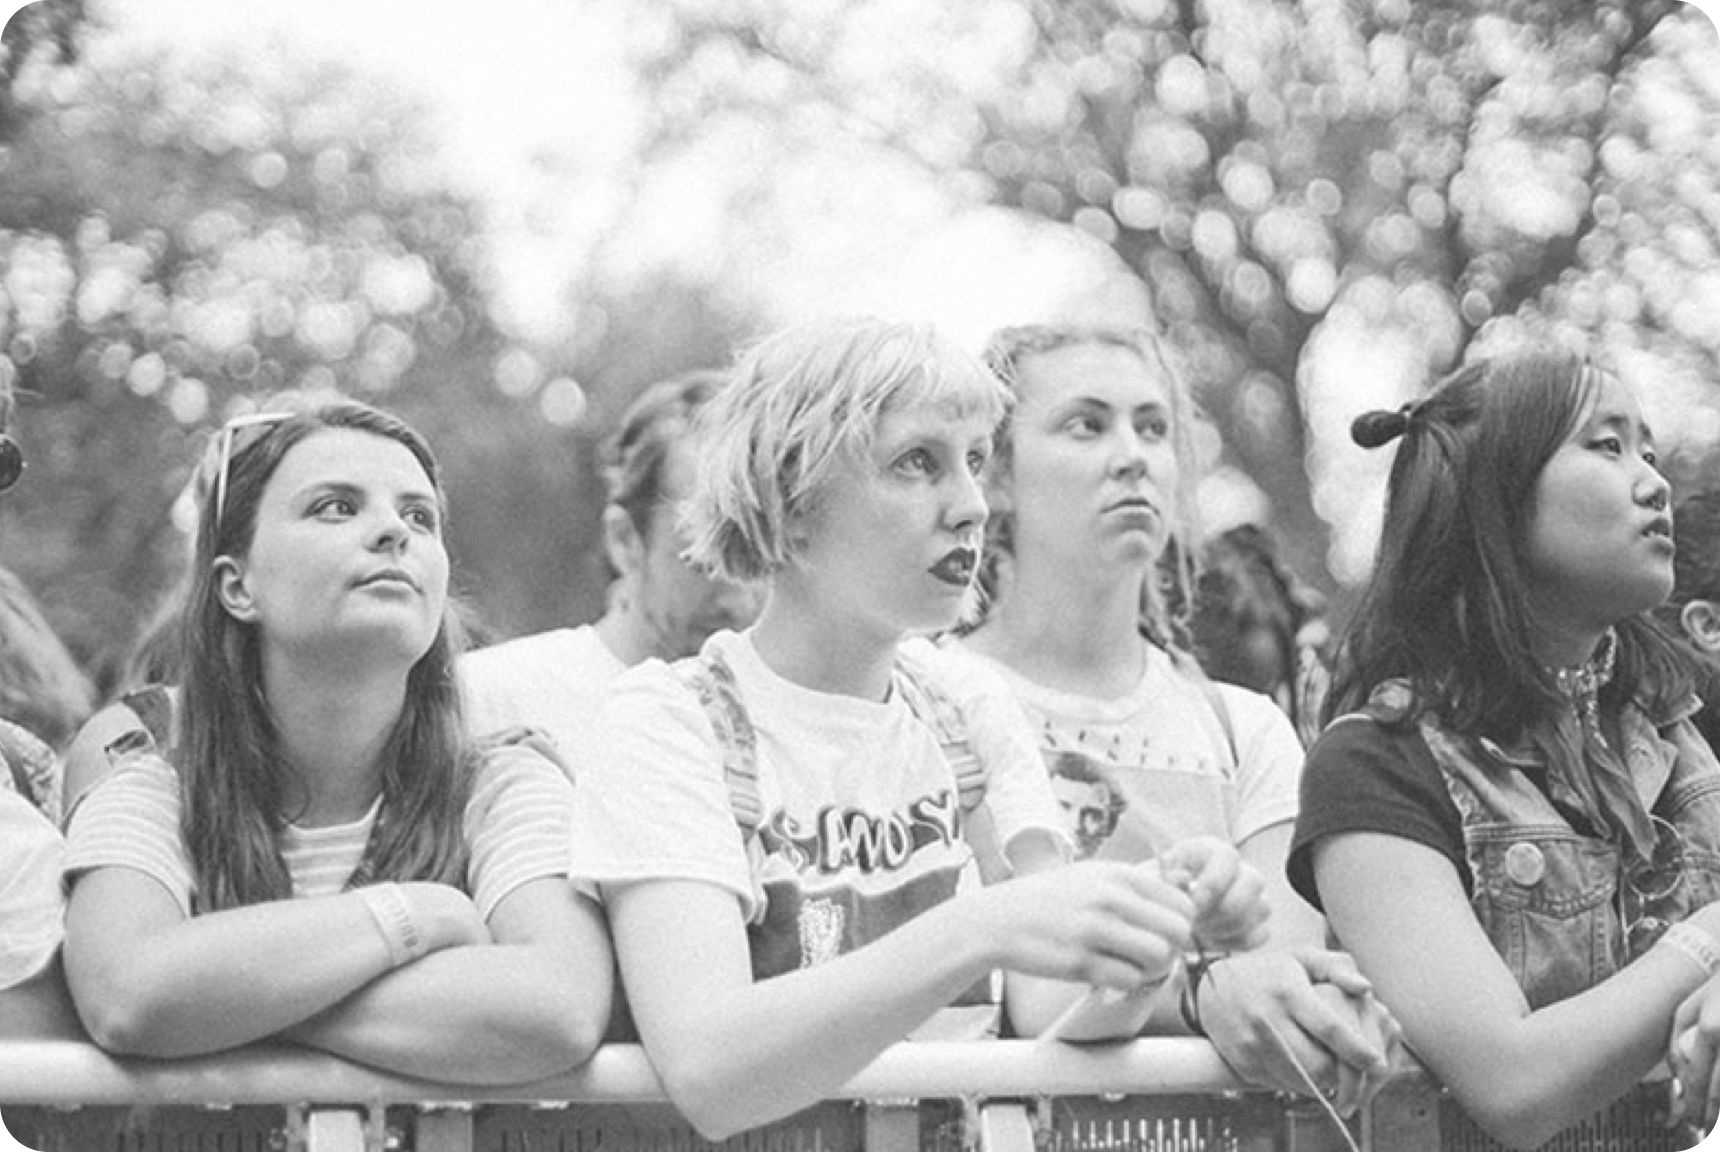 A group of women standing against a barrier watching a music performance